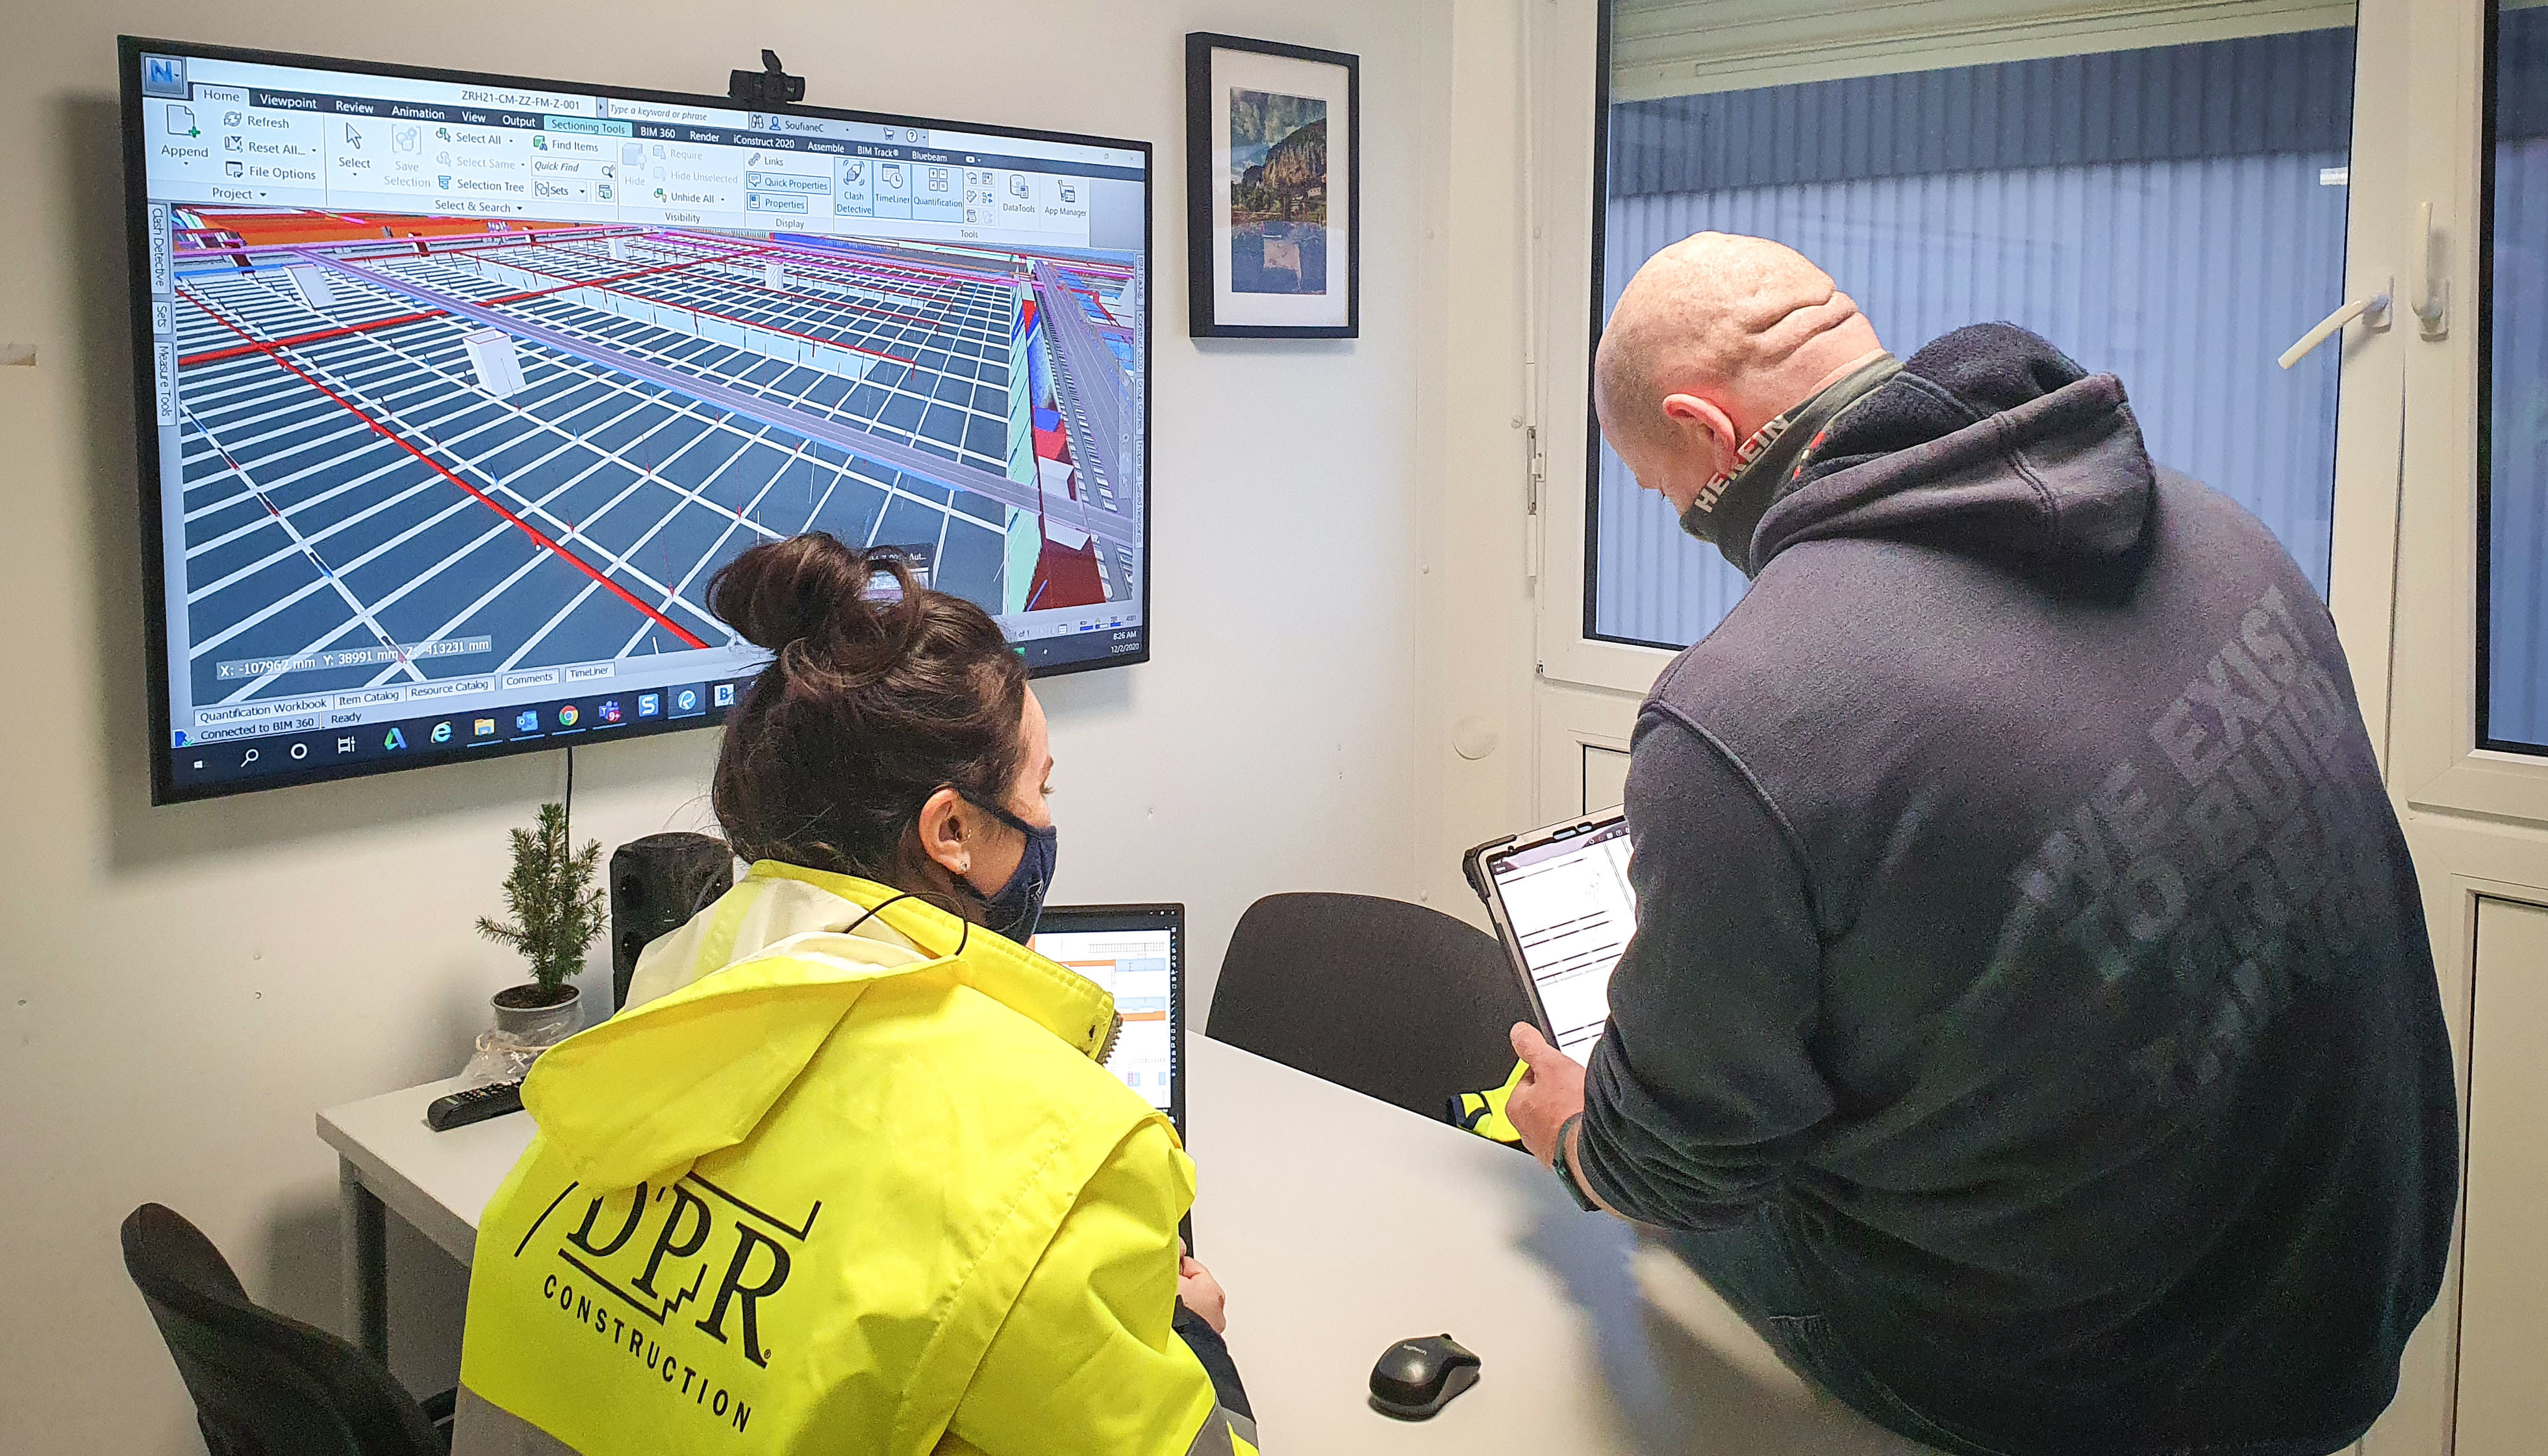 Two DPR workers in a jobsite office review a digital model of their project on a wall-mounted screen.